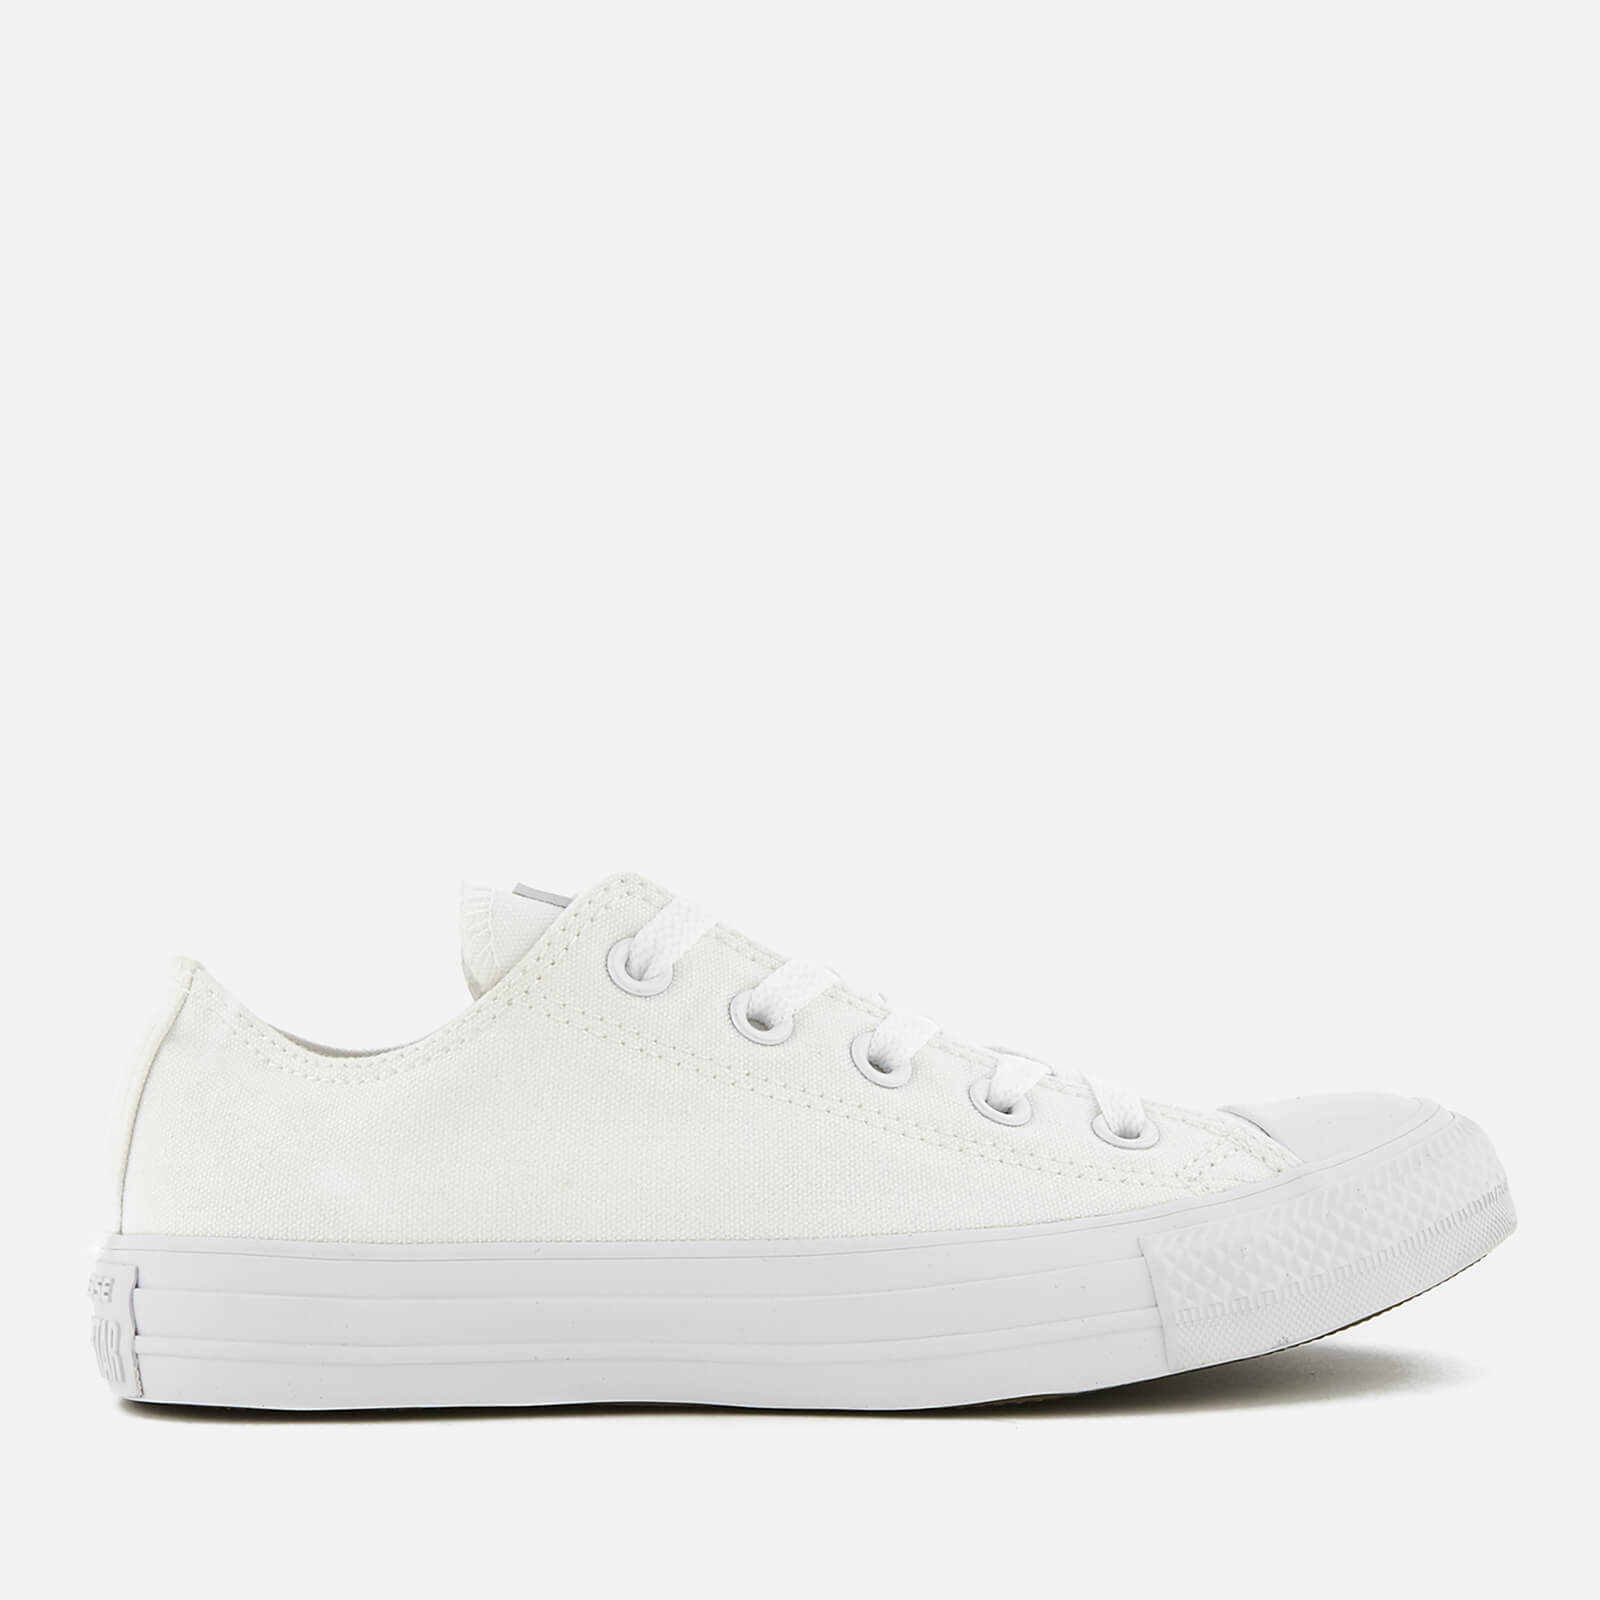 8c4fb6340a13 Converse Chuck Taylor All Star Ox Canvas Trainers - White Monochrome Mens  Footwear